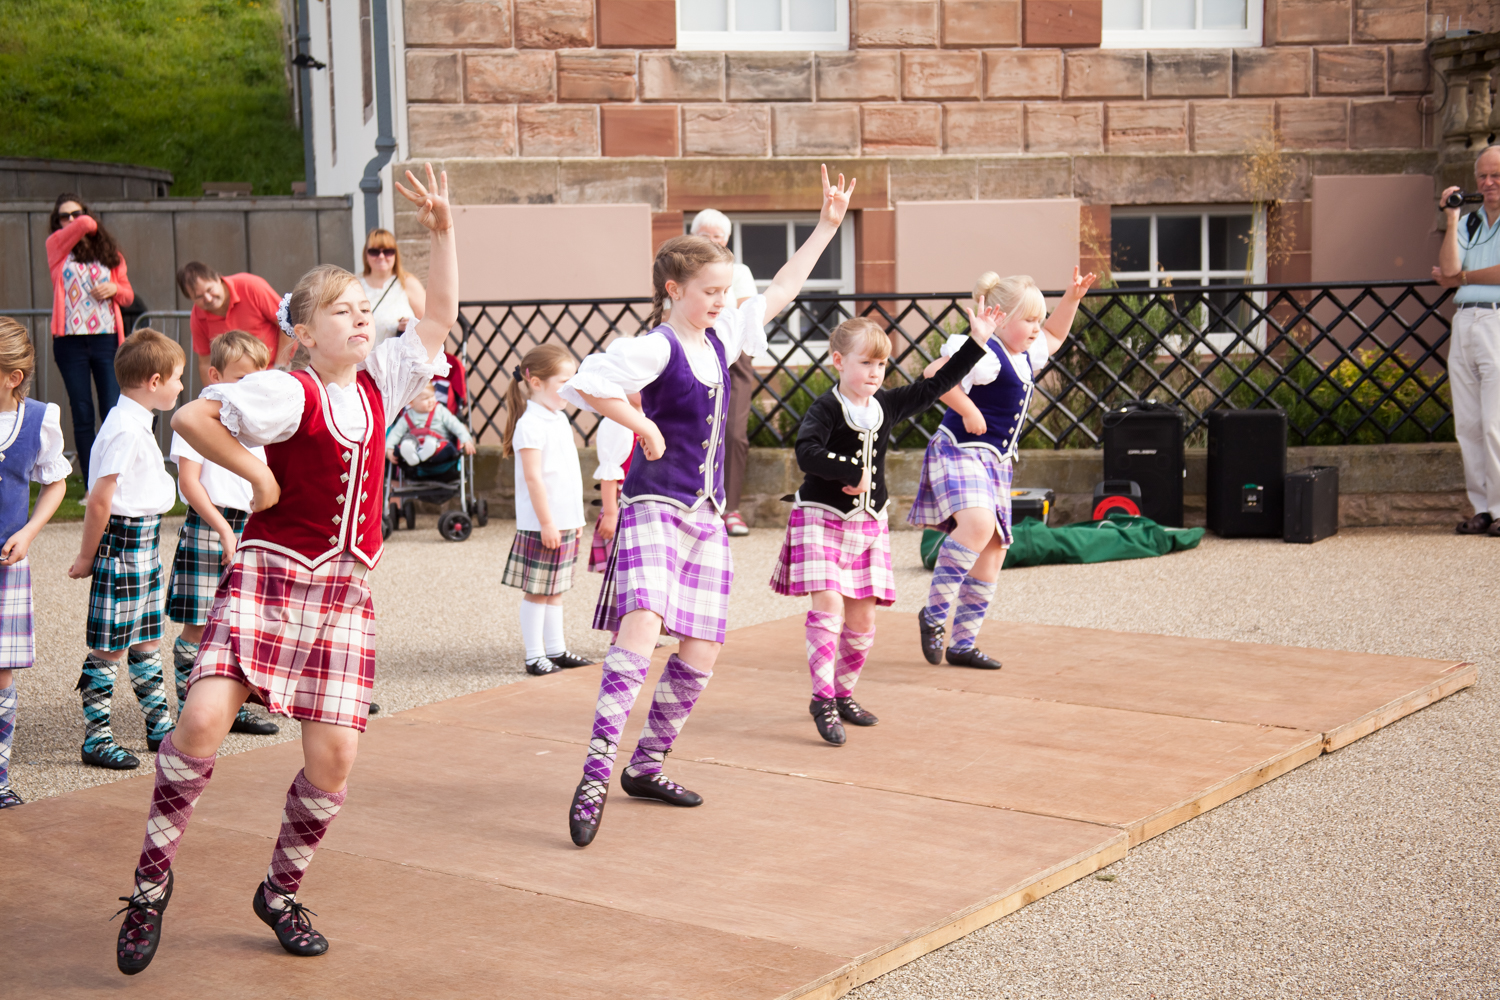 PICTORIAL_BERWICK_eyemouth-gunsgreen-extravaganza-photography-entertainment-party-event-photographer-harbour-gary-dunn-dancers-stilts-performances-speeches-day-out-summer-4604.jpg